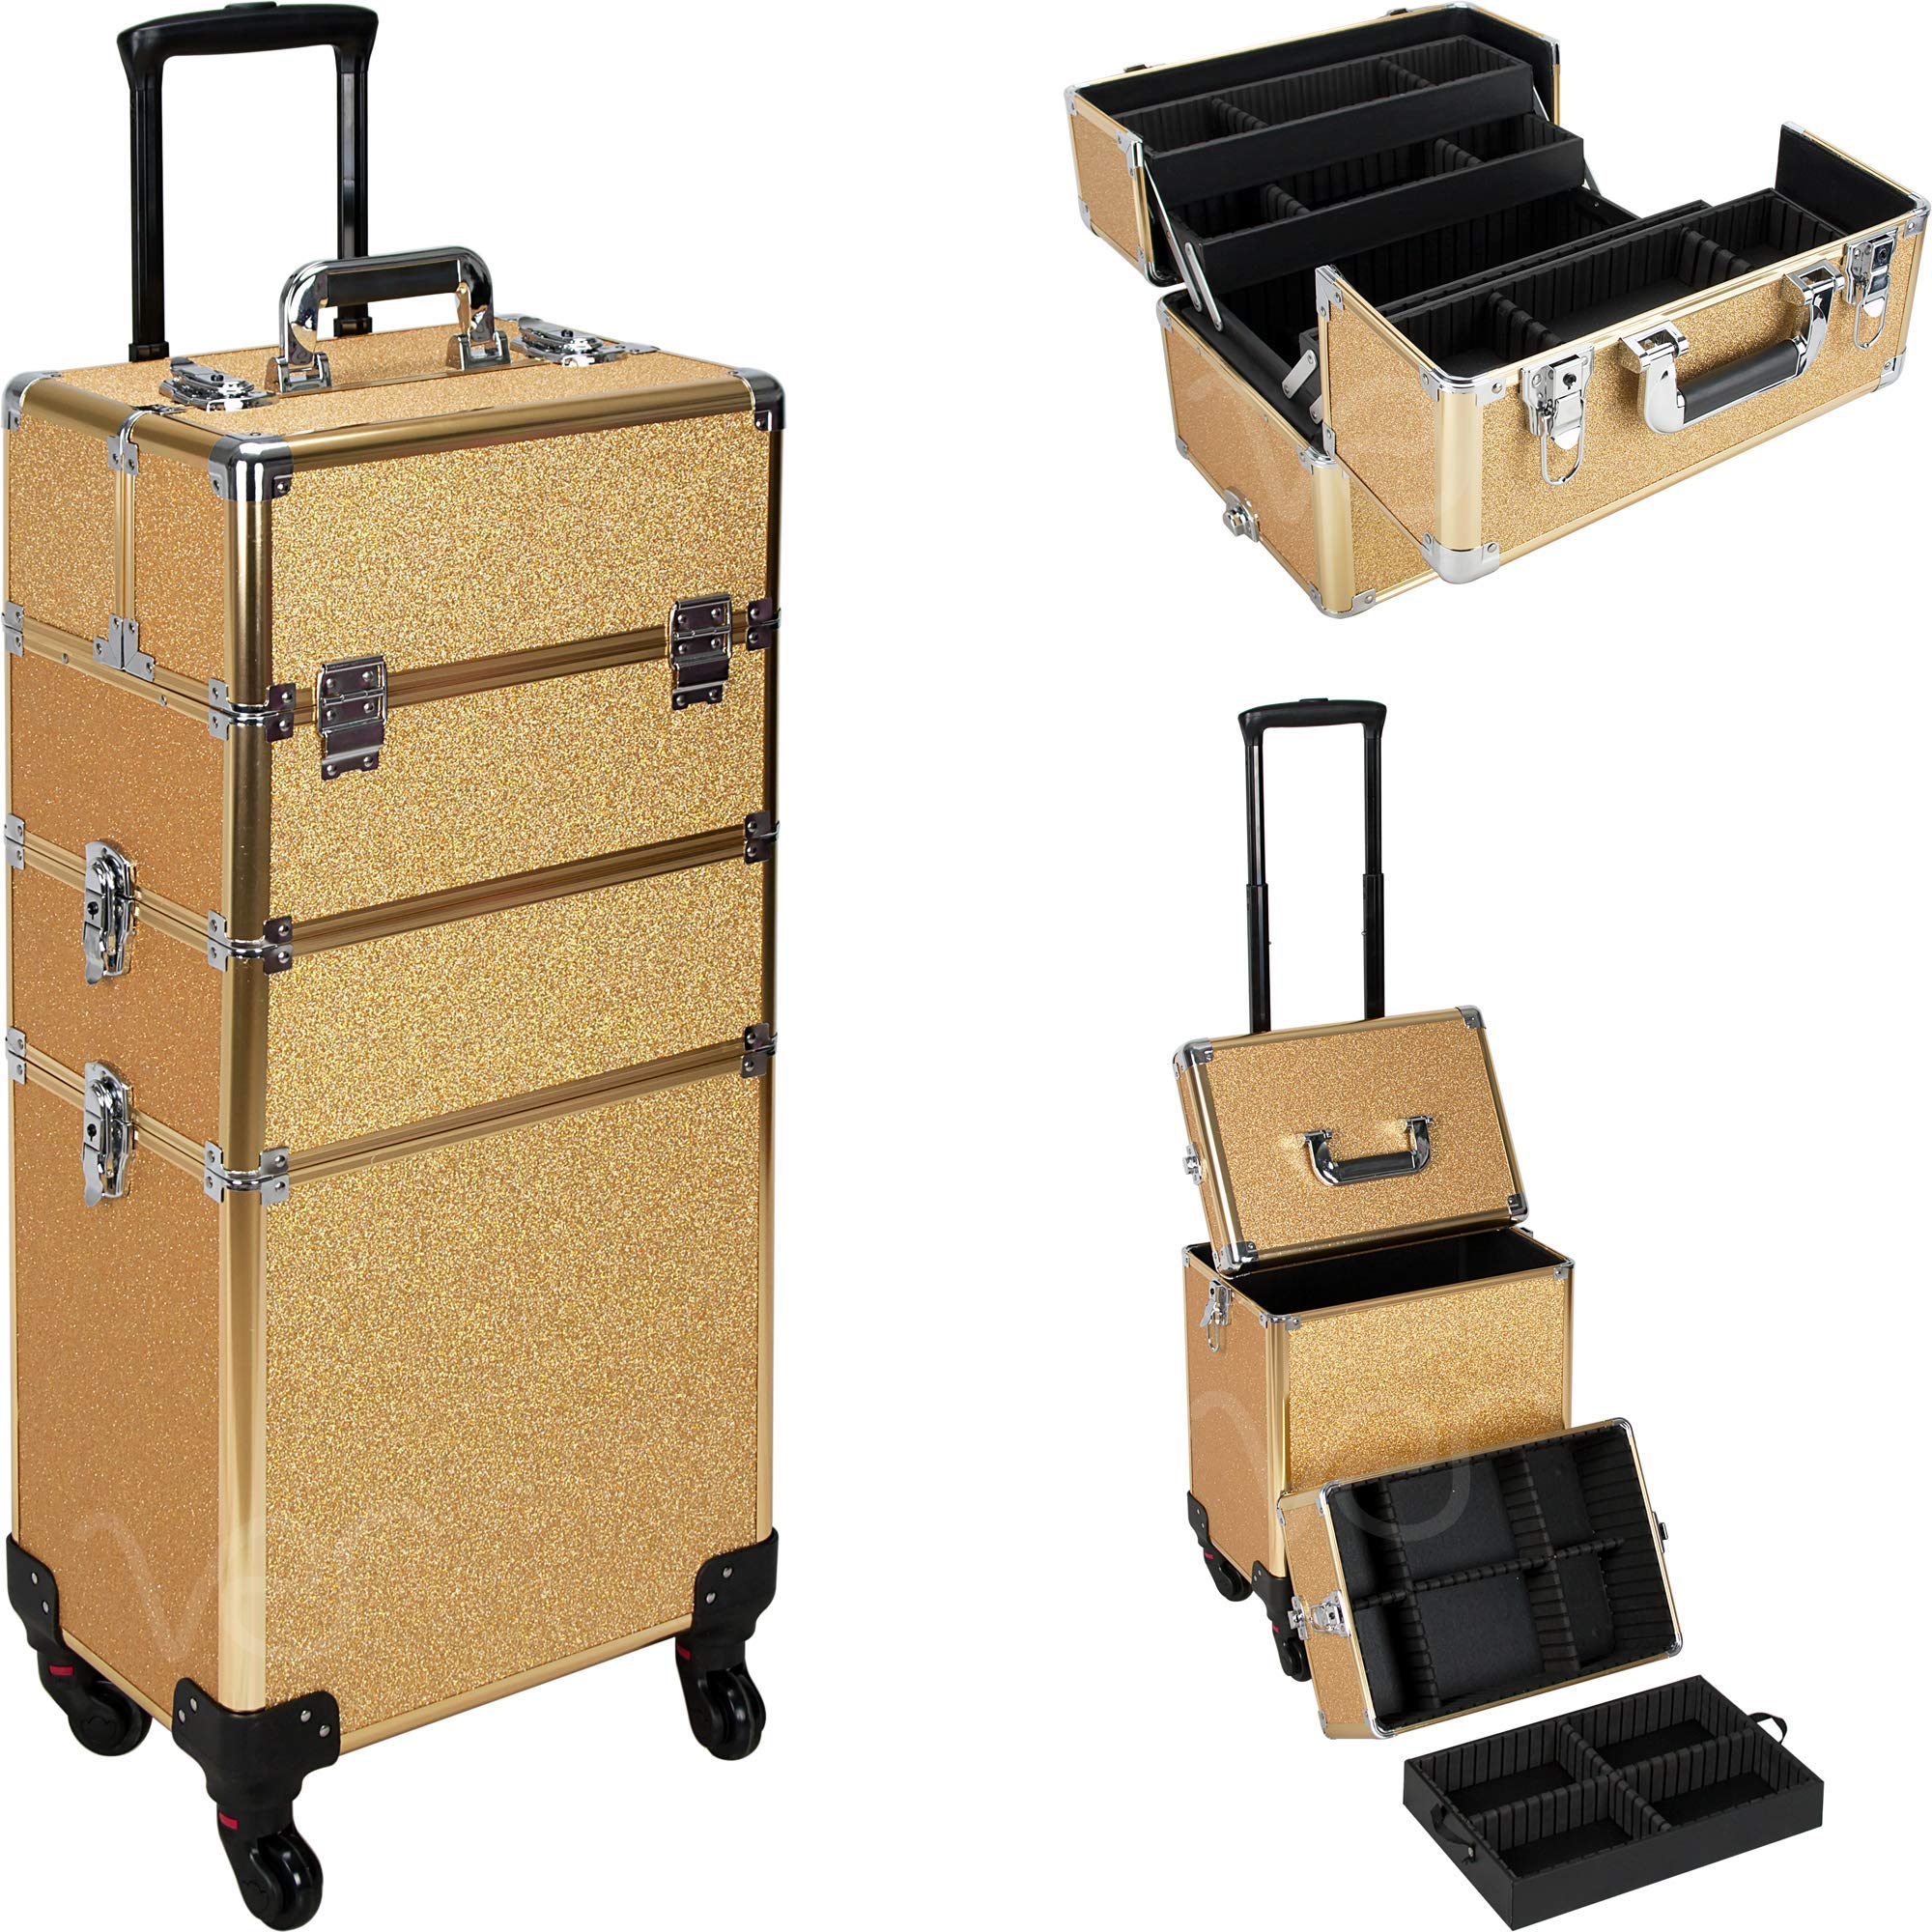 Pro Rolling Makeup Case with Wheels, Extendable Trays, Removable and Adjustable Dividers (Gold Glitter)